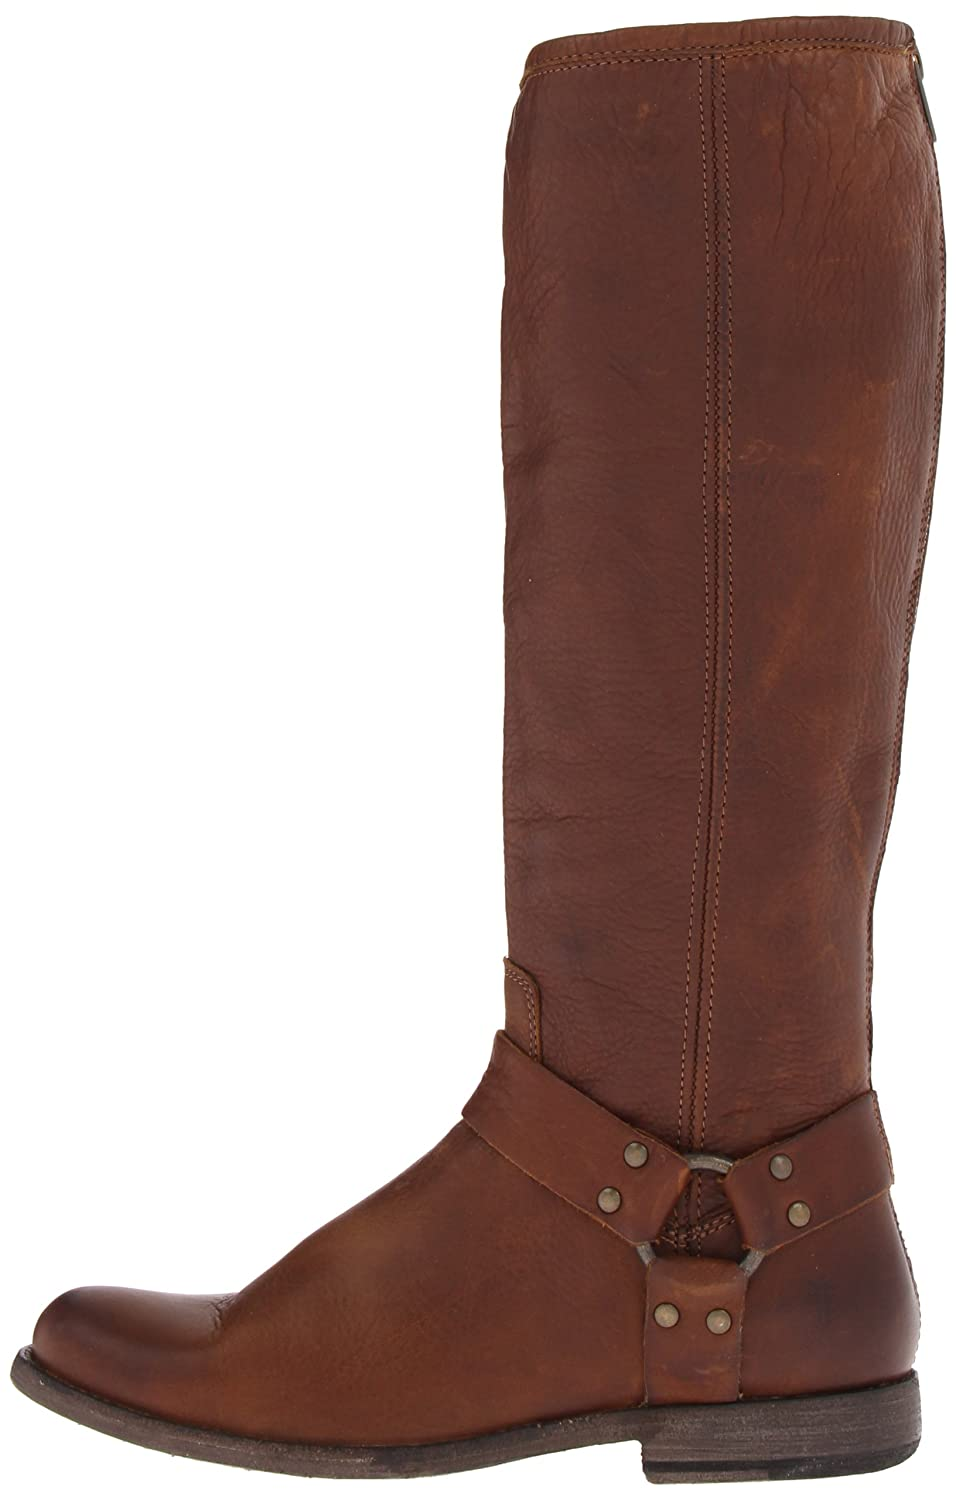 FRYE Women's US|Cognac Phillip Harness Tall Boot B004W25WOG 6 B(M) US|Cognac Women's Soft Vintage Leather-76850 19b342